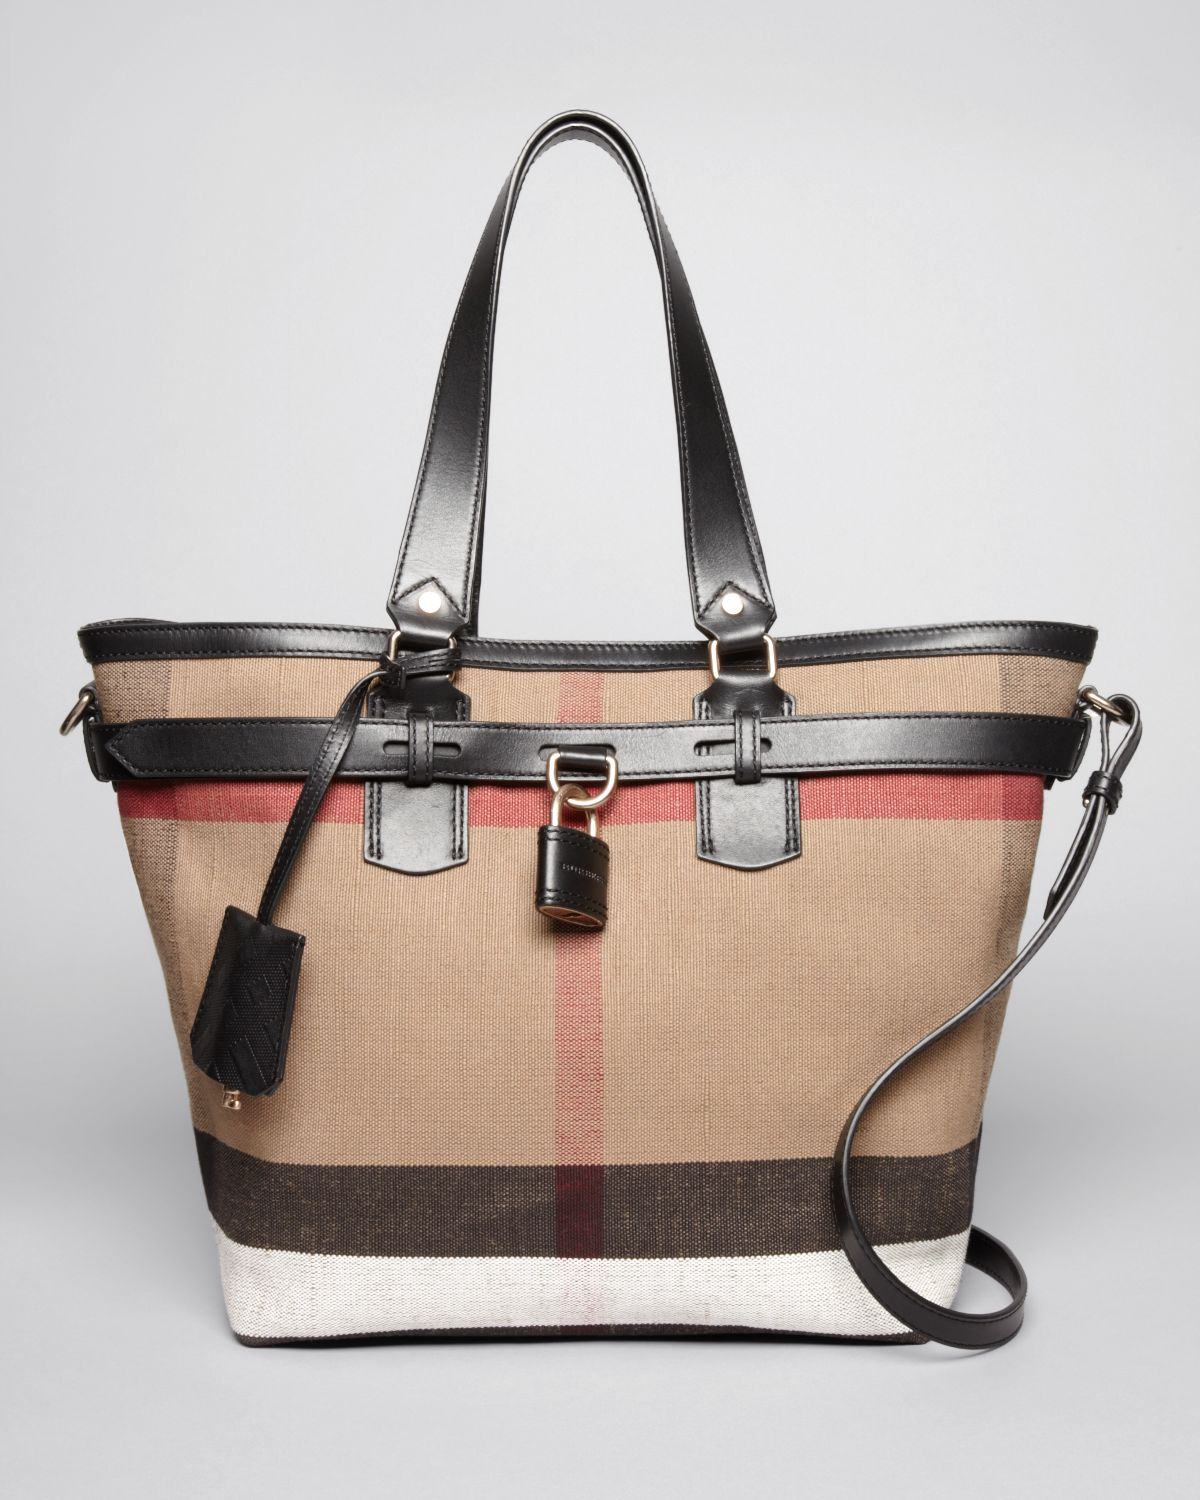 Burberry brit Tote Canvas Check Medium Traveler in Brown | Lyst